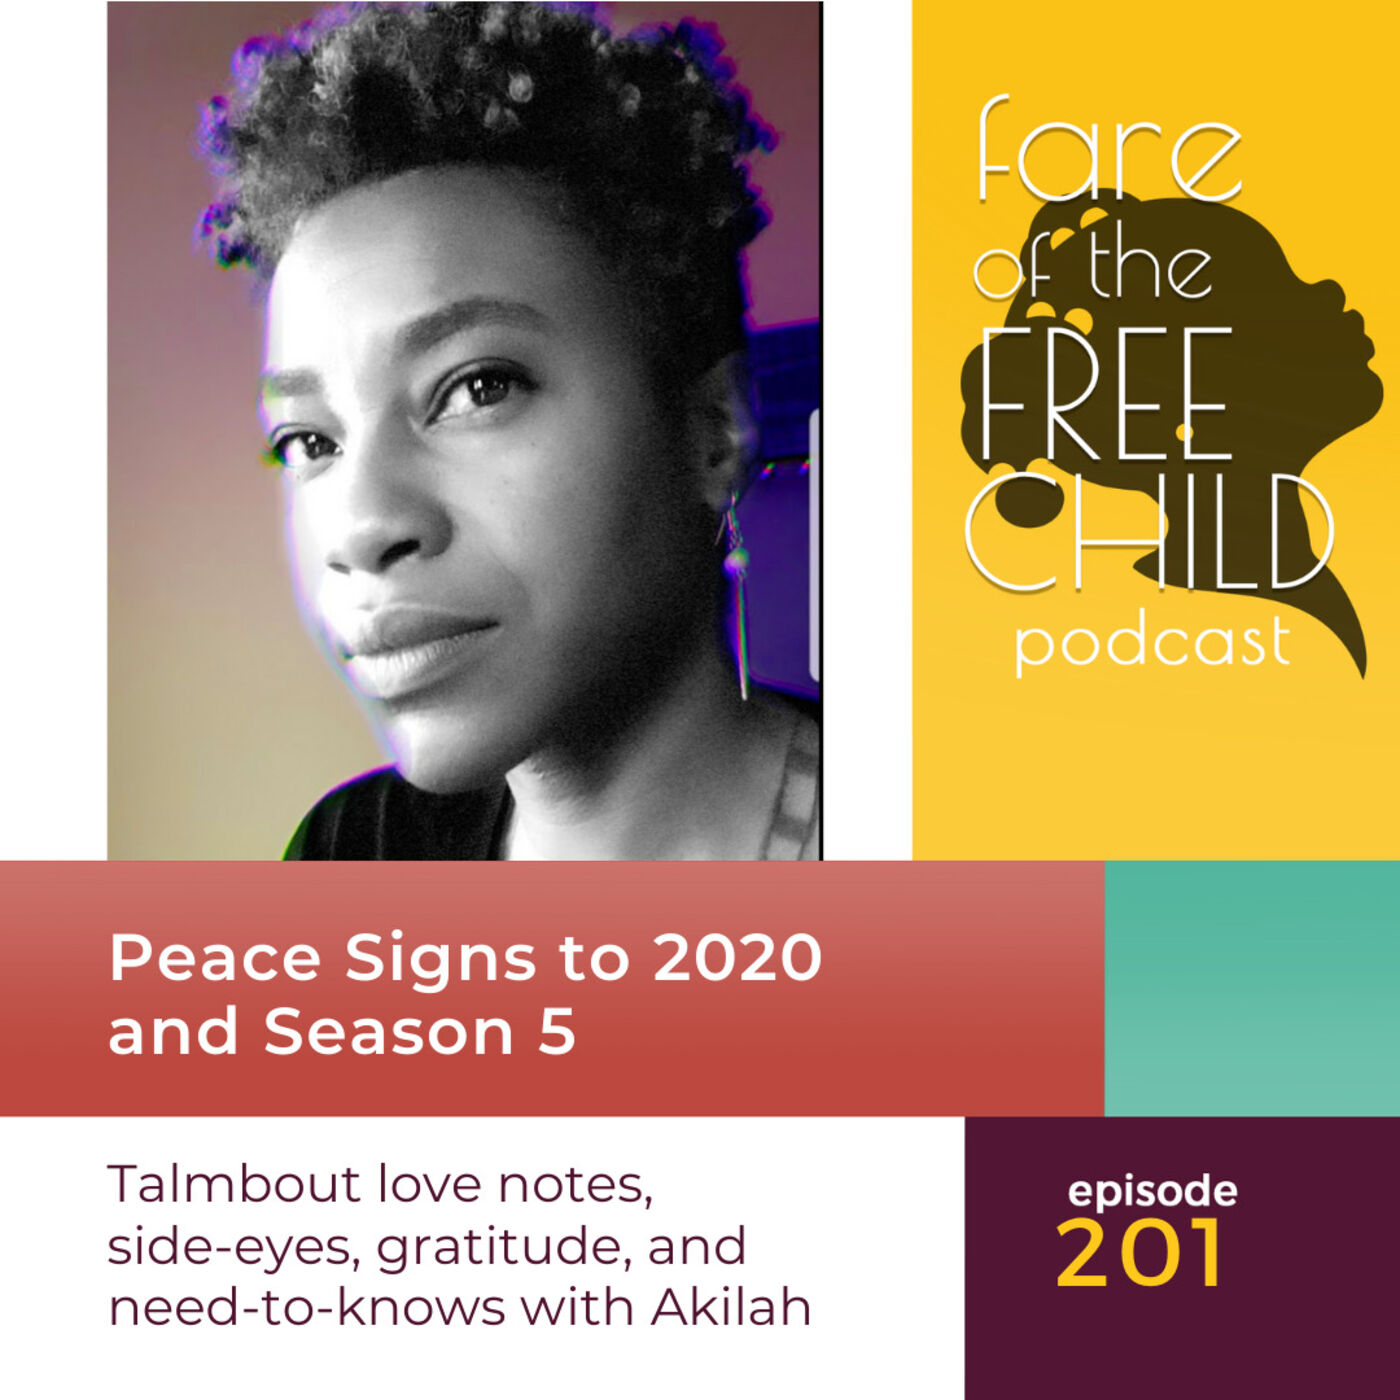 Ep 201: Peace Signs to 2020 and Season 5 Talmbout love notes, side-eyes, gratitude, and need-to knows with Akilah